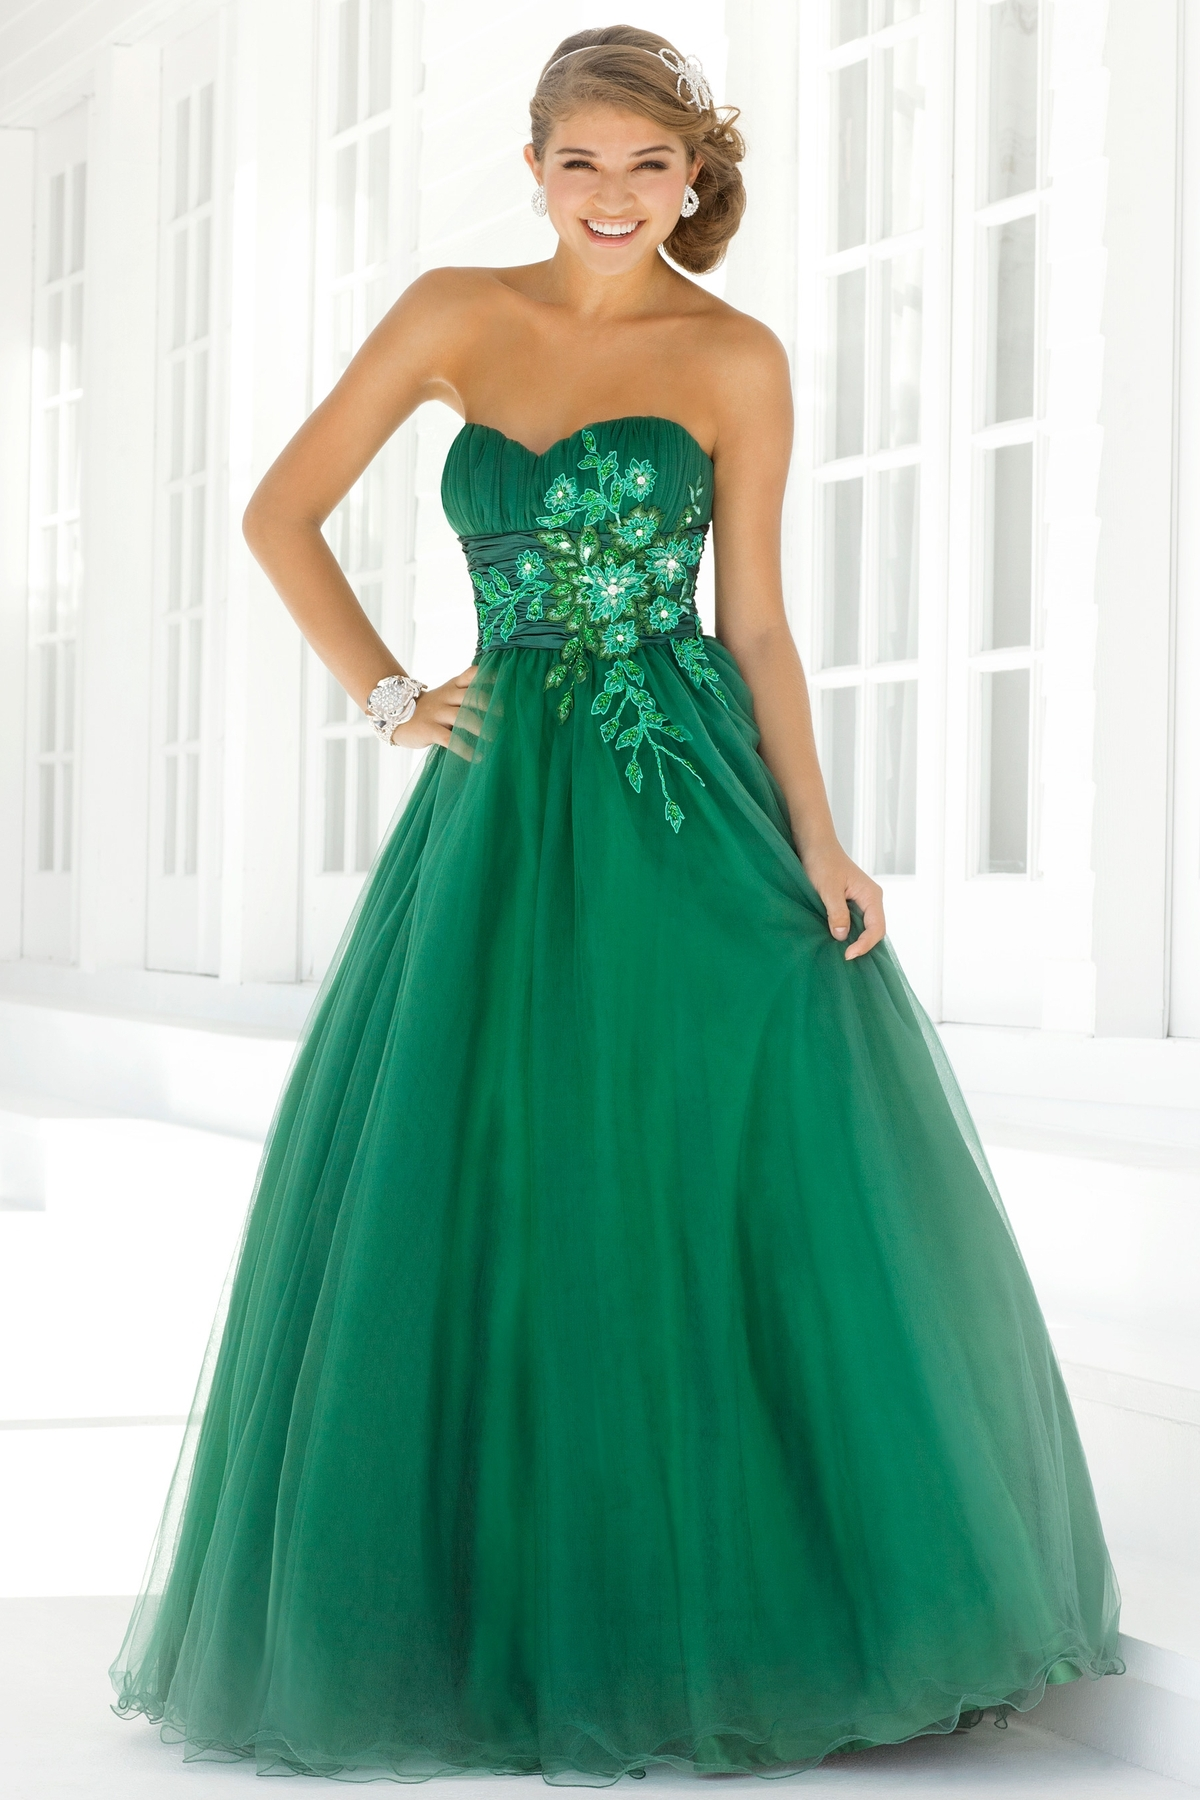 Shop All Plus Dresses Plus Long Dresses Plus Short Dresses Plus on Sale Shop Plus Homecoming Plus Homecoming Dresses Plus Homecoming Under $ Shop Plus Prom; With a variety of styles and shades available, this collection is sure to have the perfect green special-occasion dress for prom, HOCO or any other event on your social calendar.